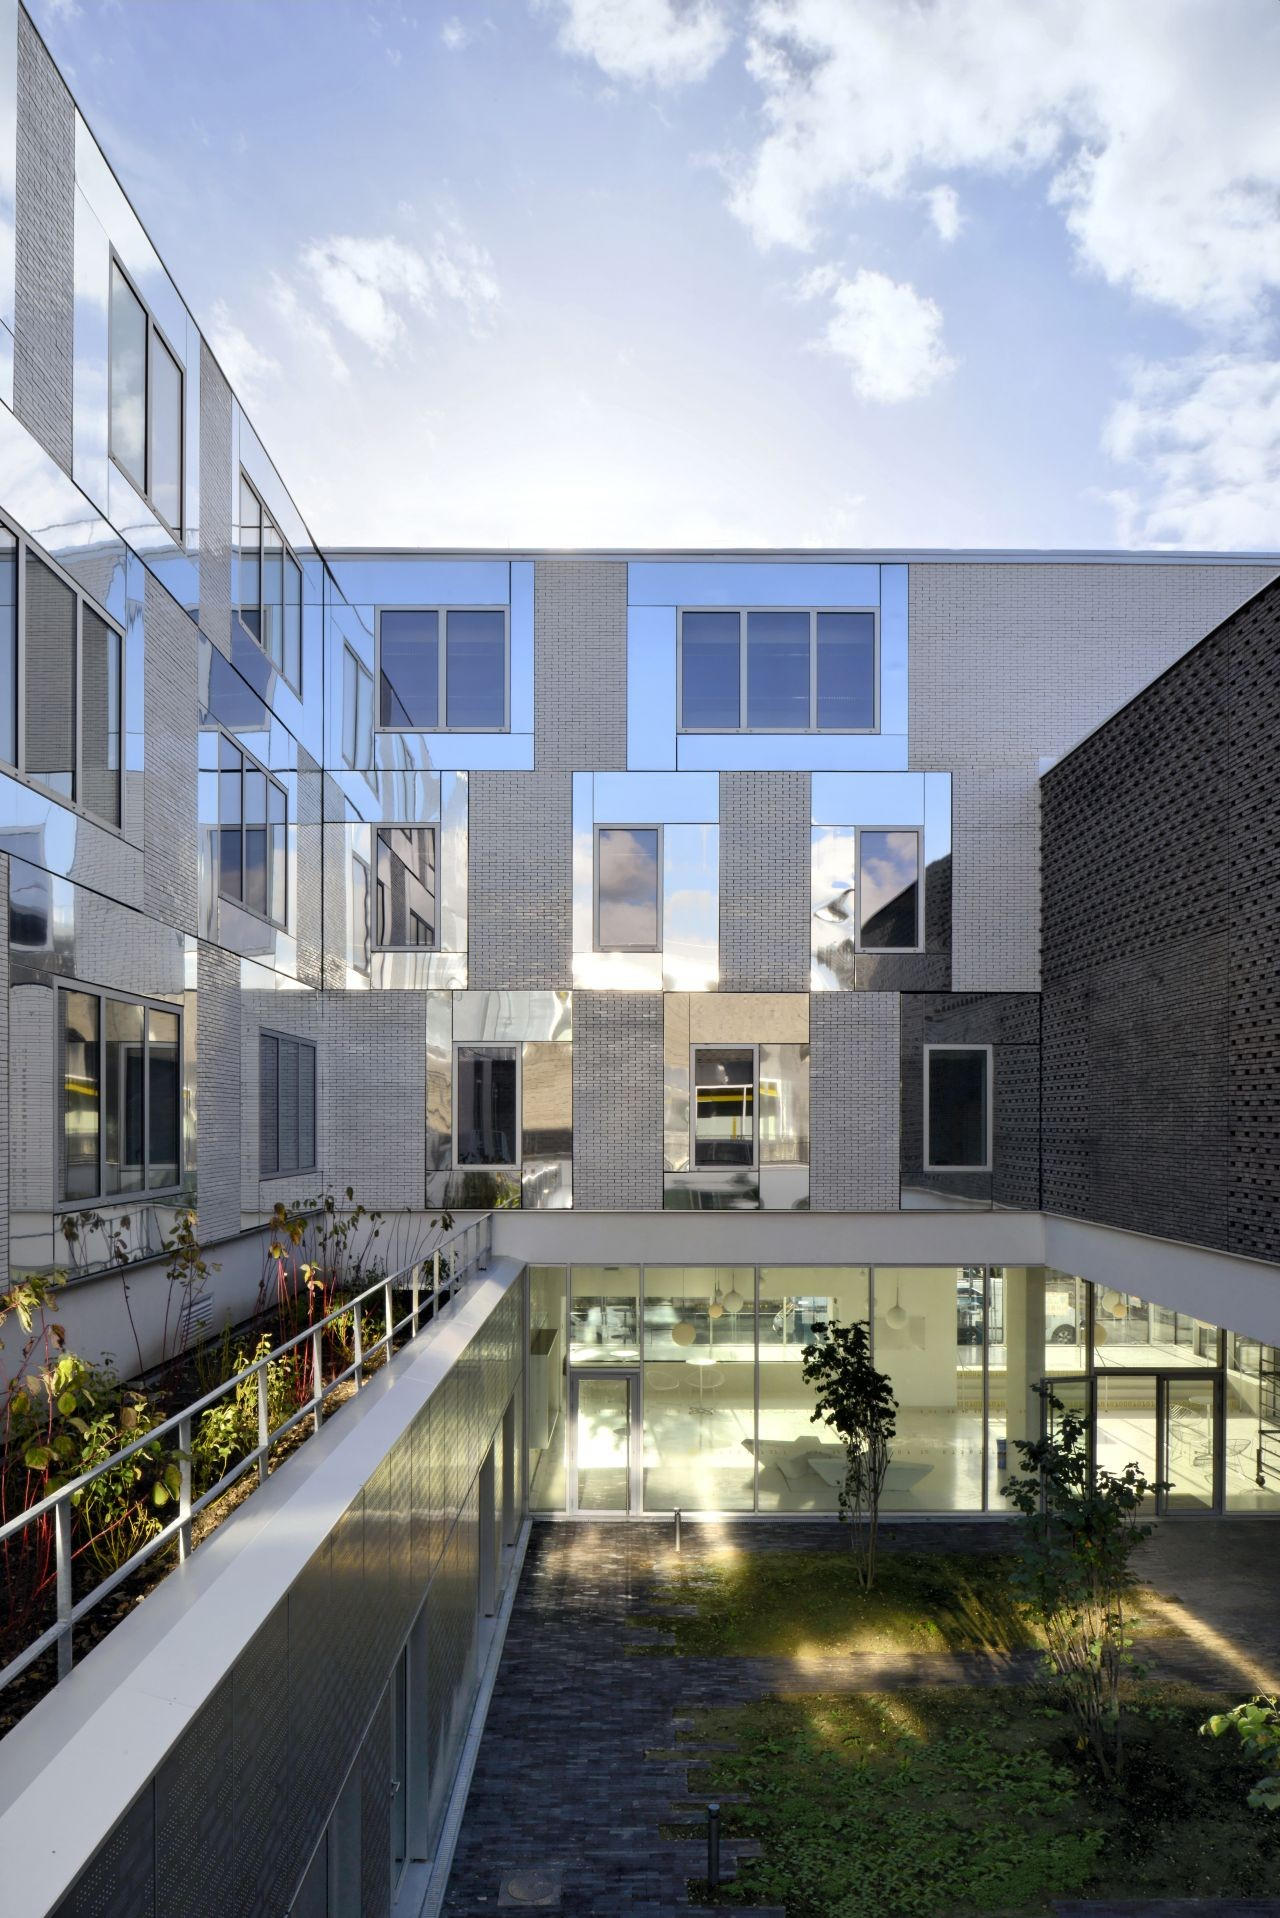 The extension of the Montreuil Polytechnic / 2/3/4/